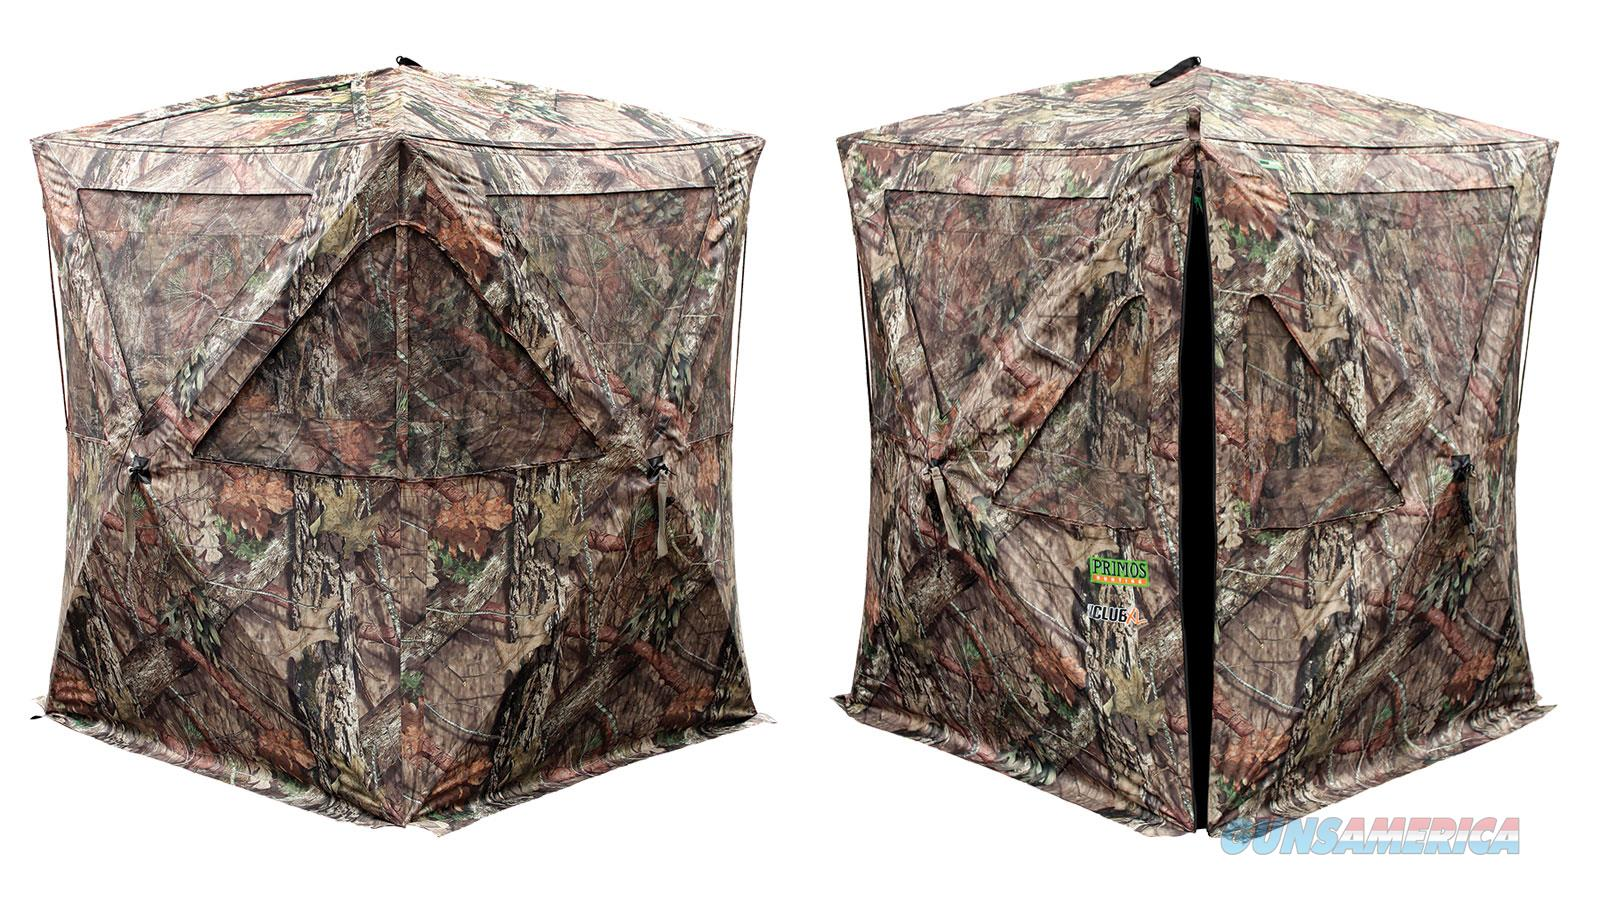 Primos Primos Club Xxl Blind Mo 65108  Non-Guns > Hunting Clothing and Equipment > Blinds